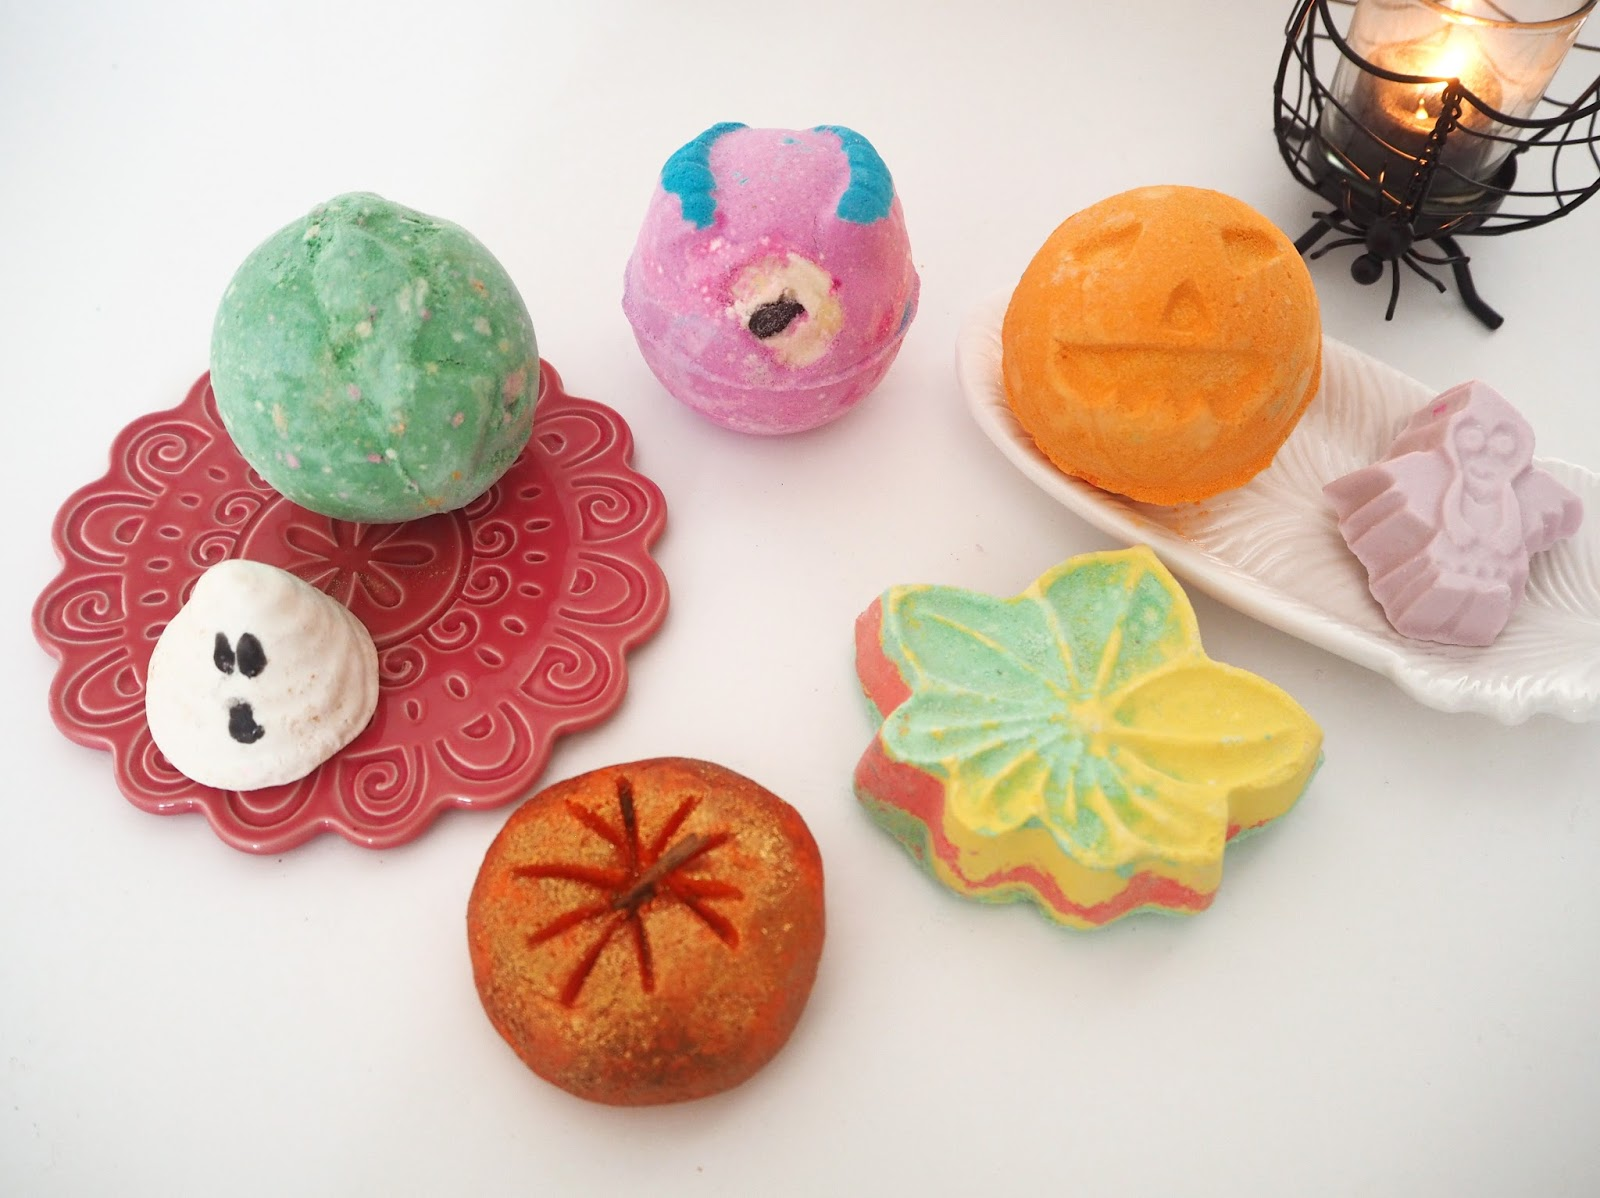 Lush Halloween Collection 2016, Katie Kirk Loves, Beauty Blogger, Bath Products, Lush UK